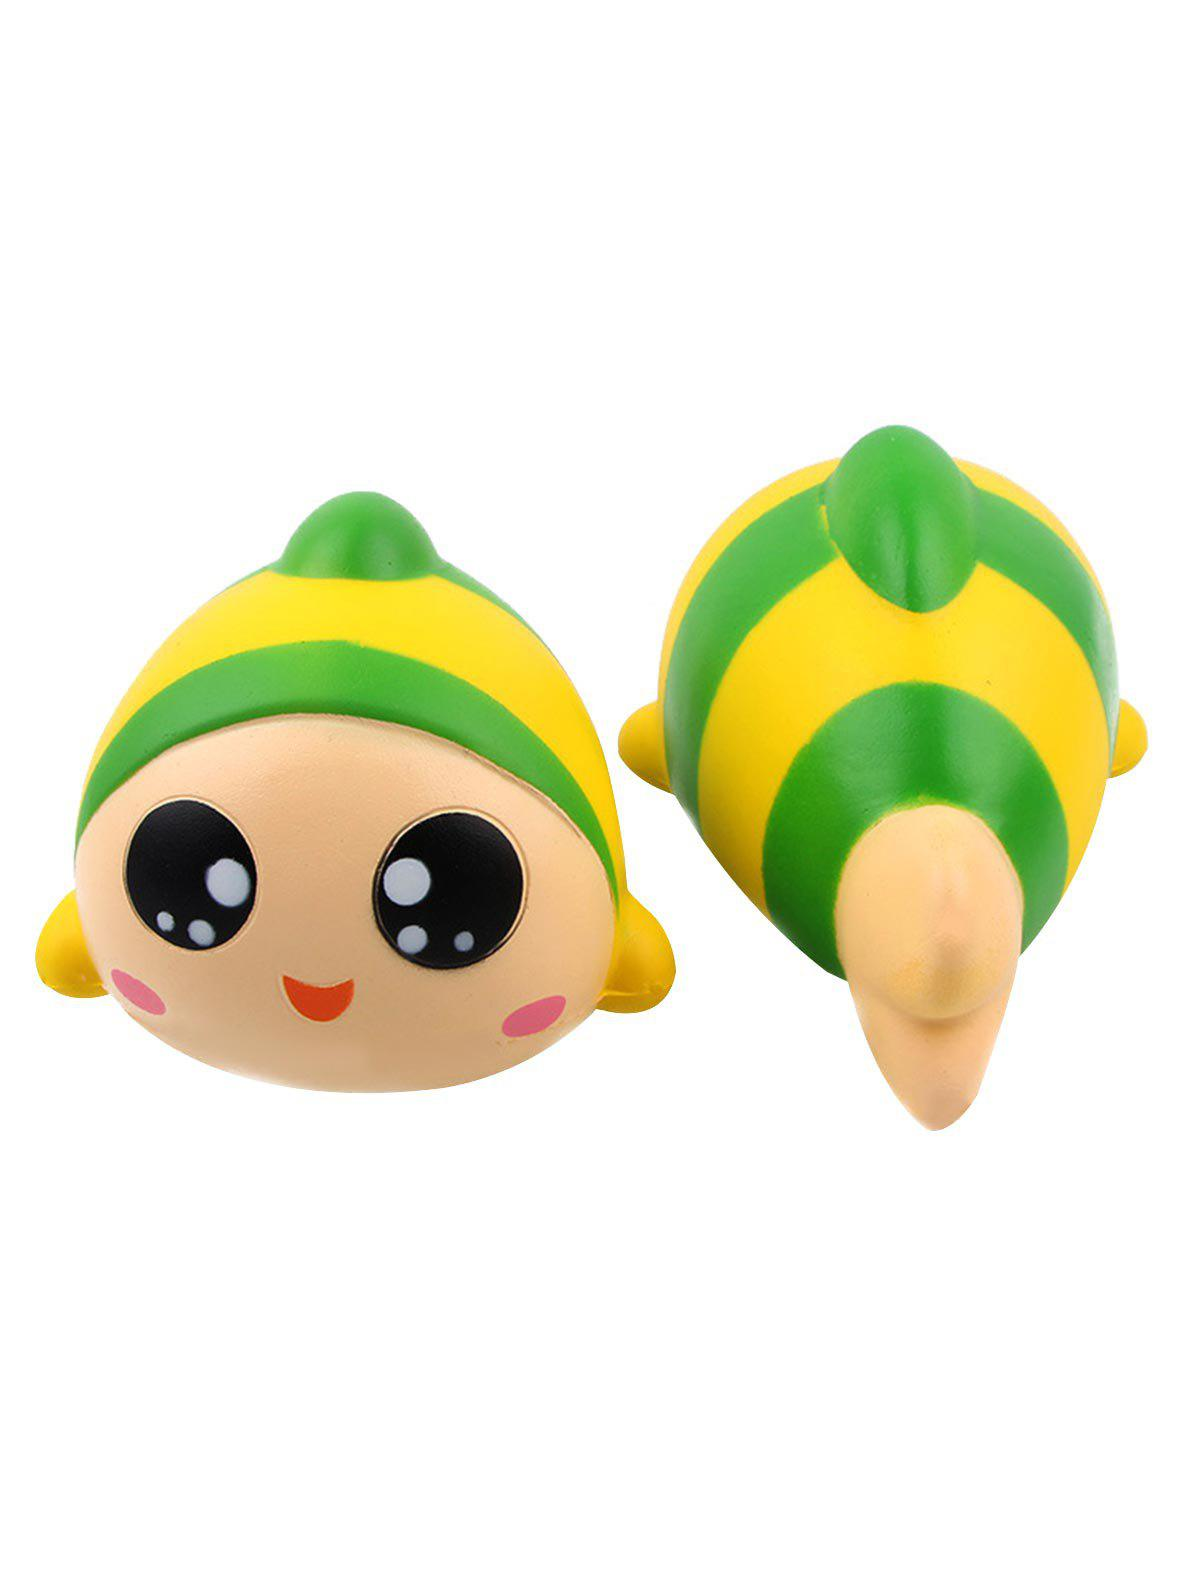 Shop Fish Stress-relief Slow Rising PU Squishy Toy